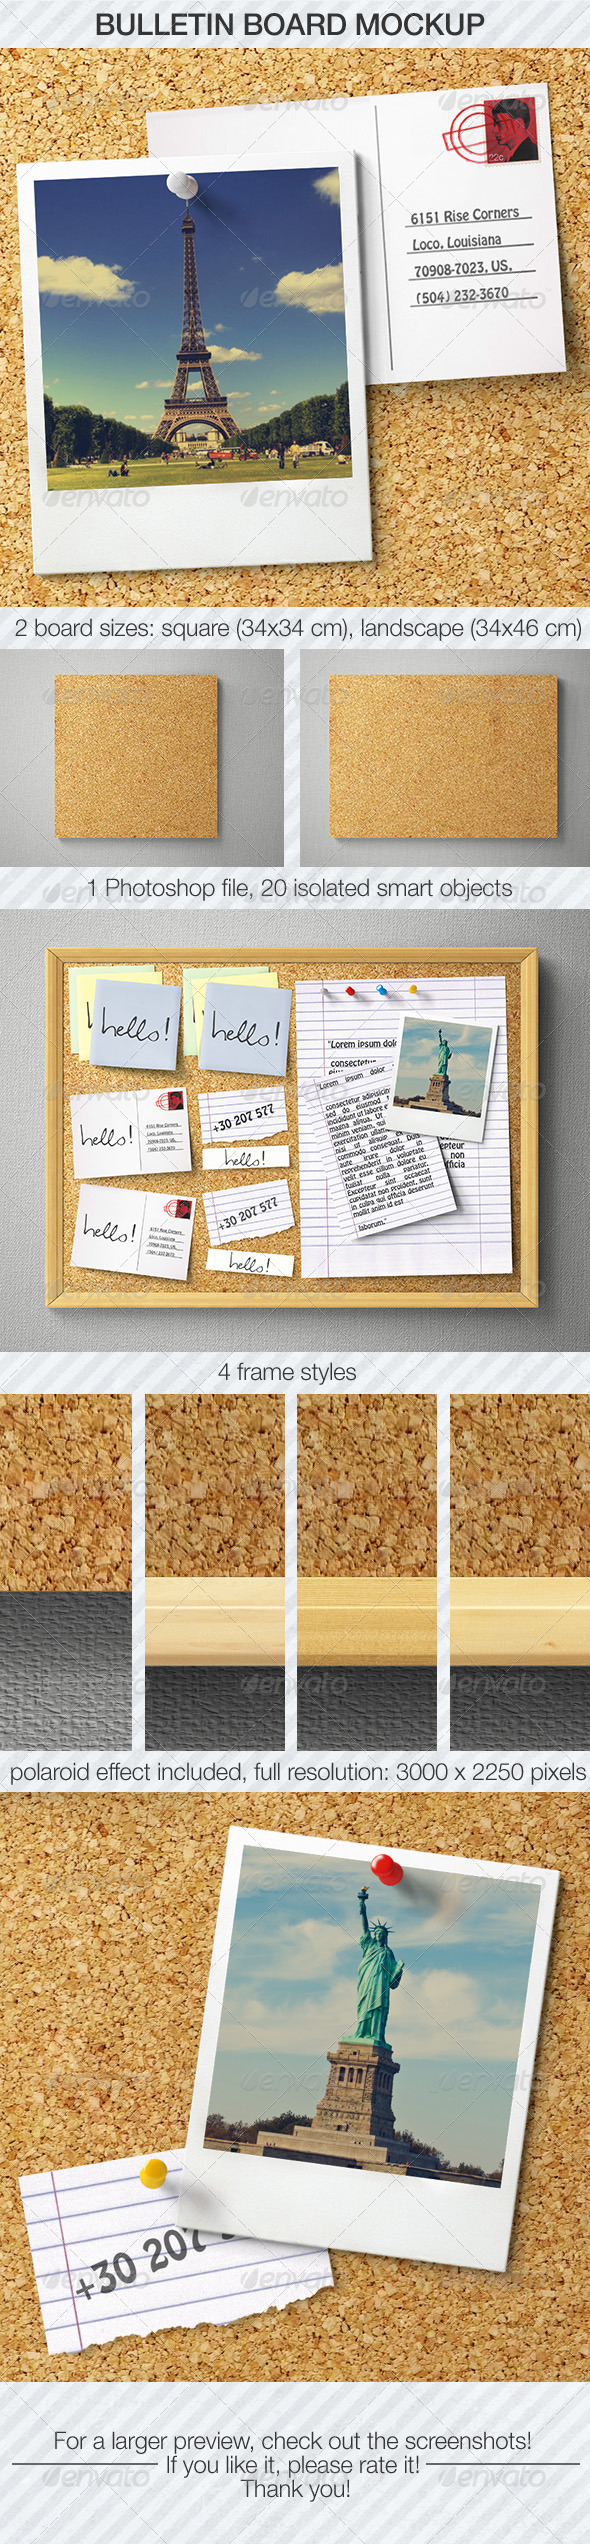 bulletin board mockup product mockups